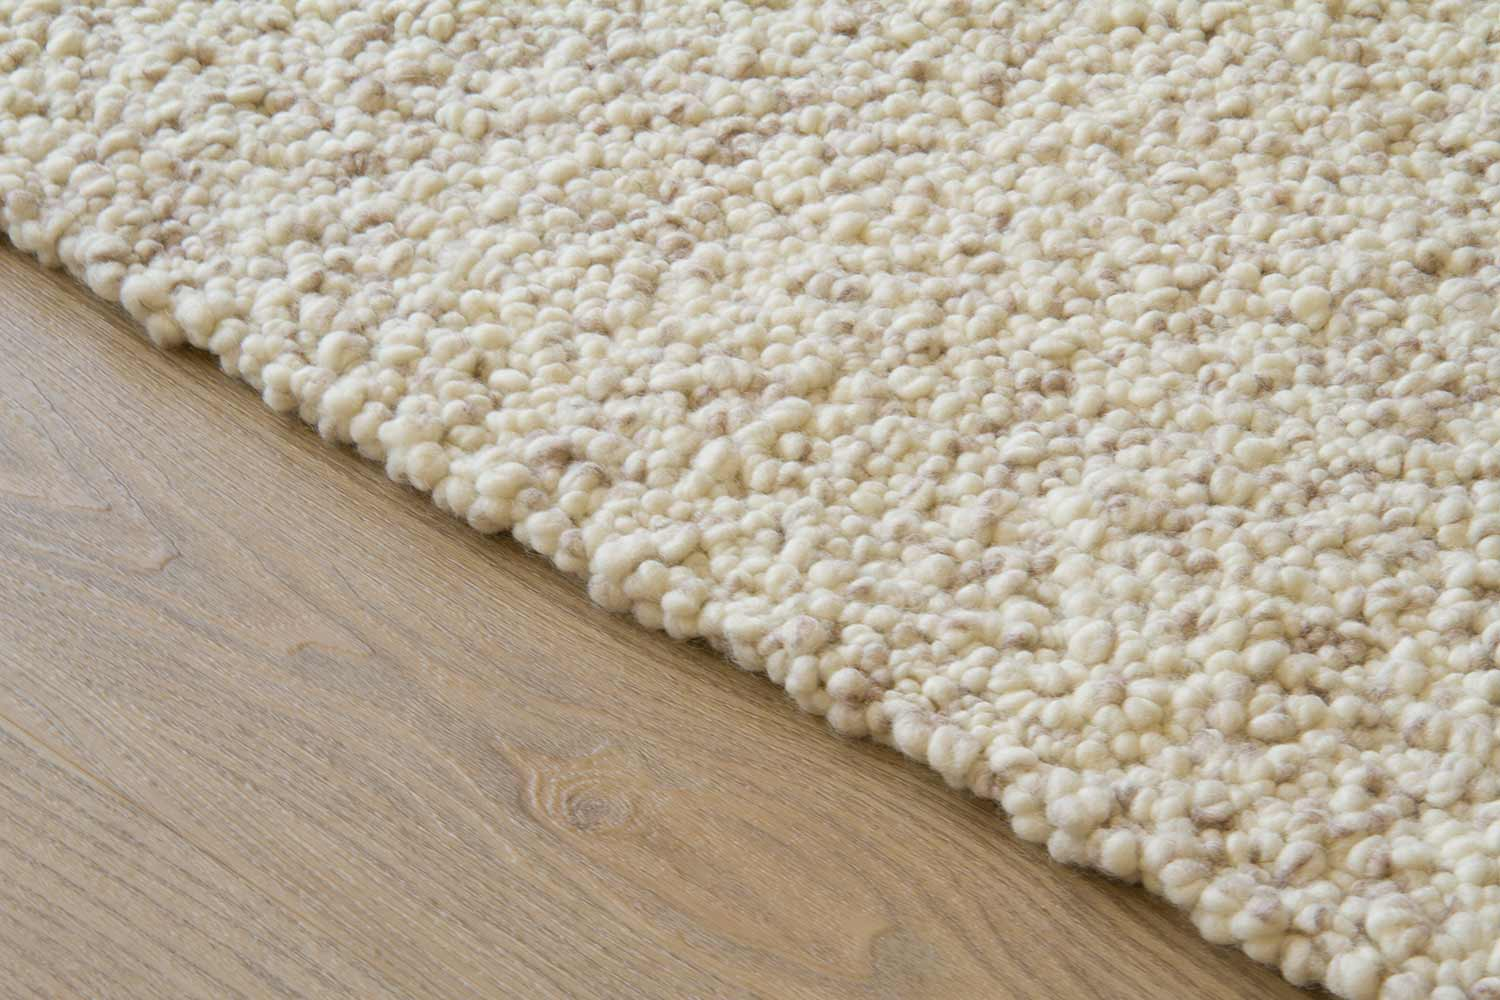 Outdoor Teppich 200x250 Handweb Teppich Tannheim Global Carpet